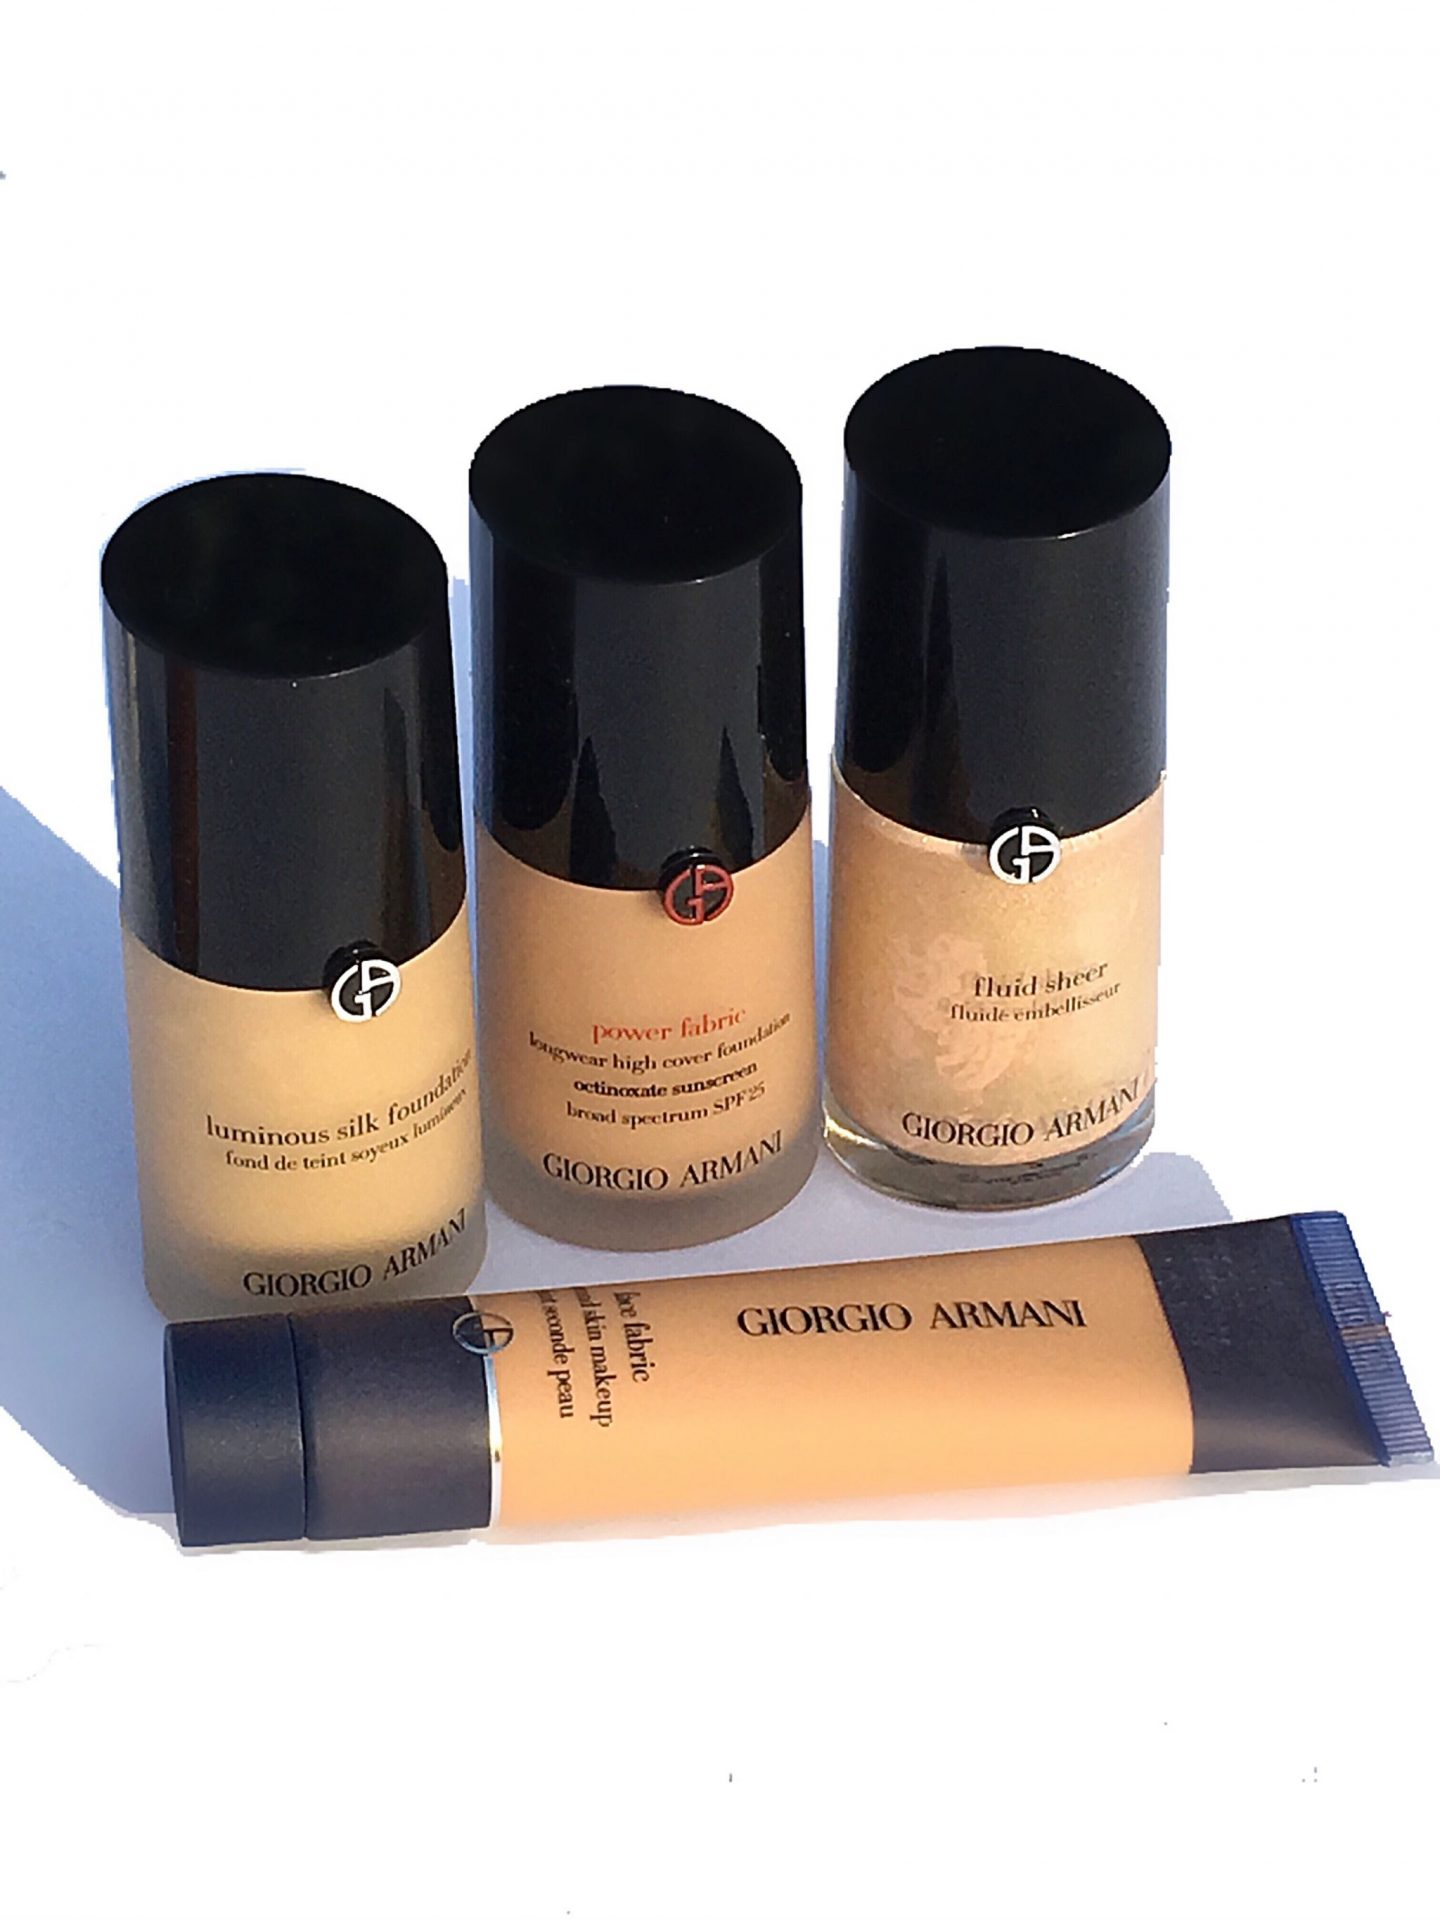 Giorgio Armani Face Fabric Foundation Review and Swatches www.calibeaute.com